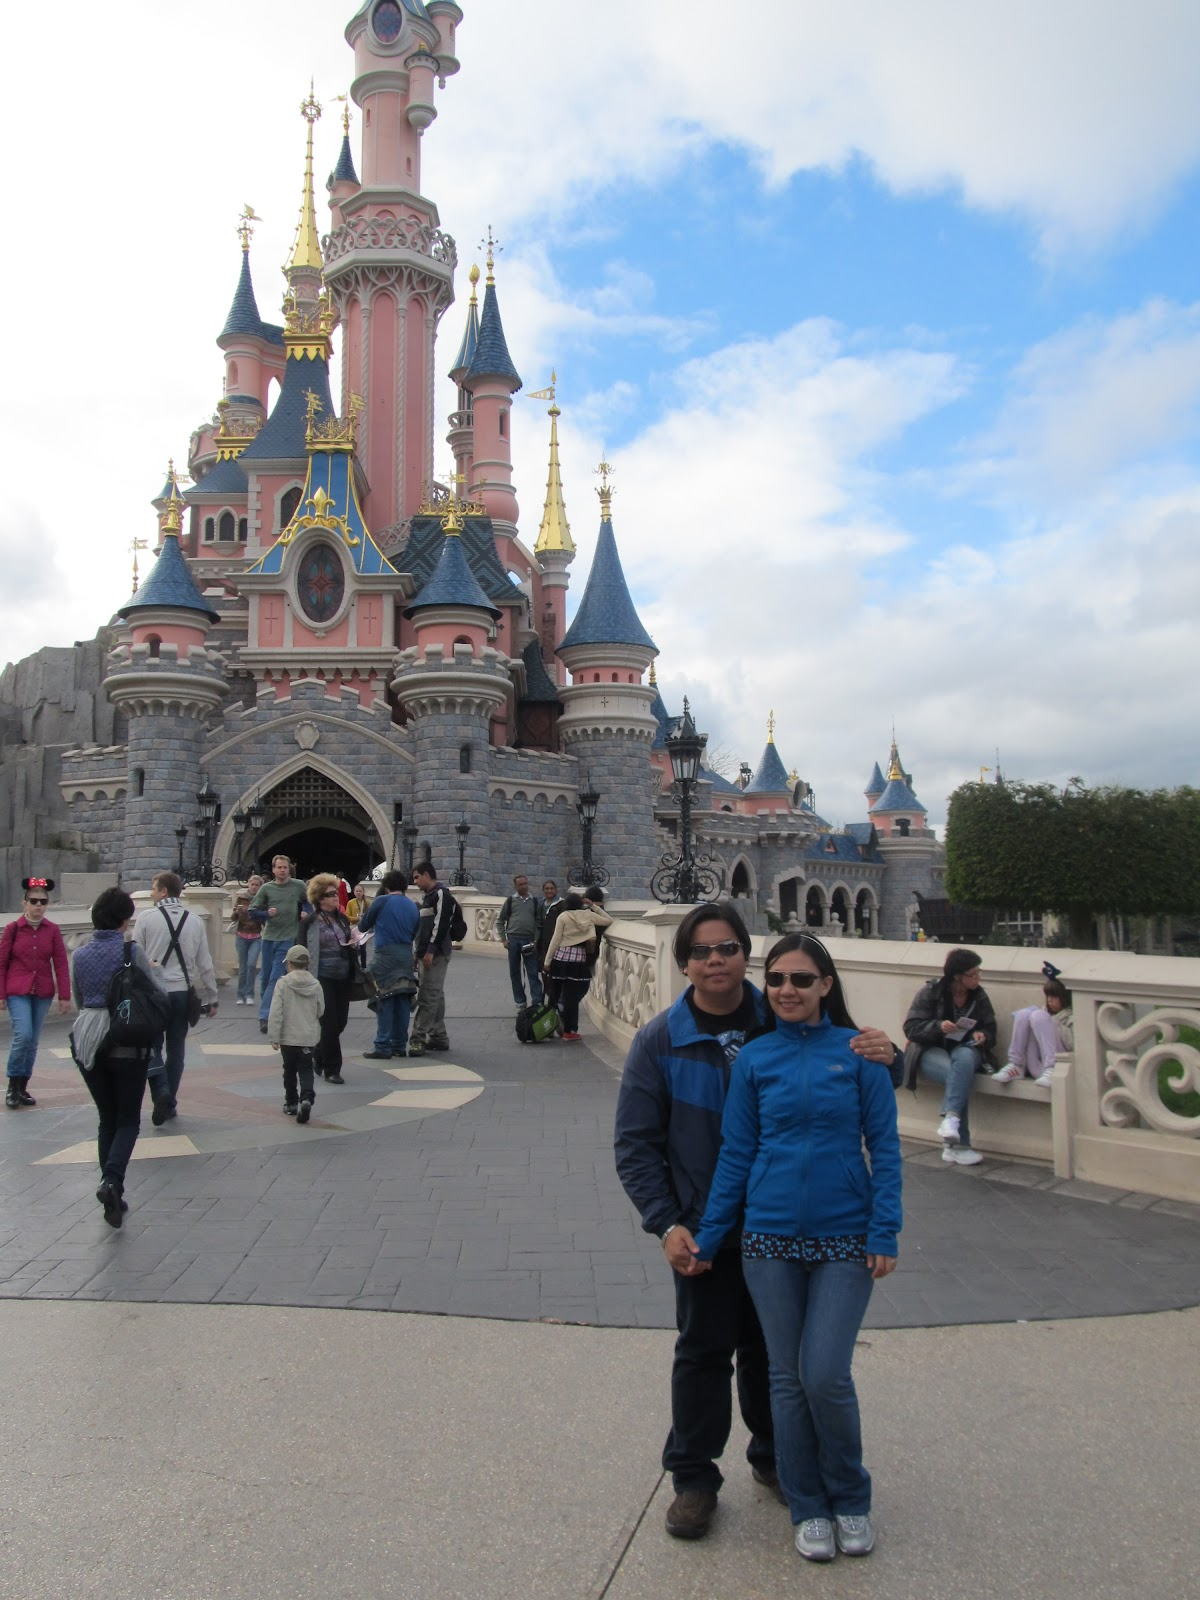 Paris Disneyland Park castle